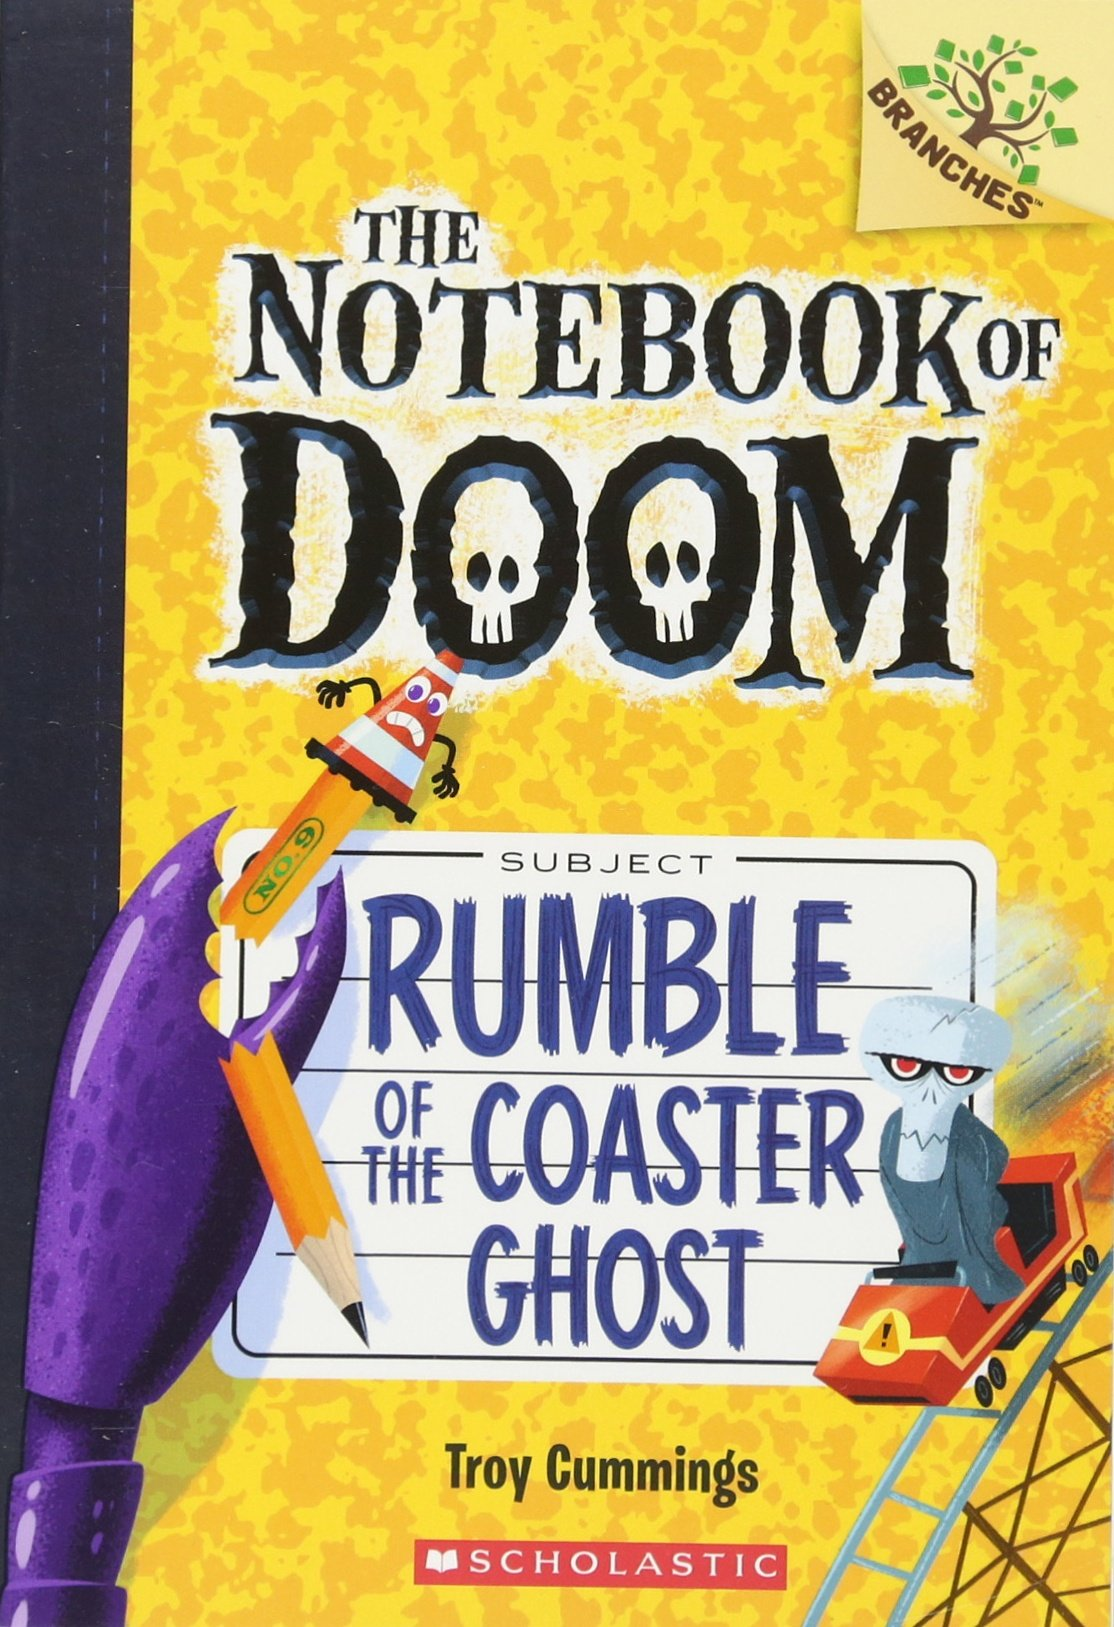 Amazon: Rumble Of The Coaster Ghost: A Branches Book (the Notebook Of  Doom #9) (9780545864978): Troy Cummings: Books